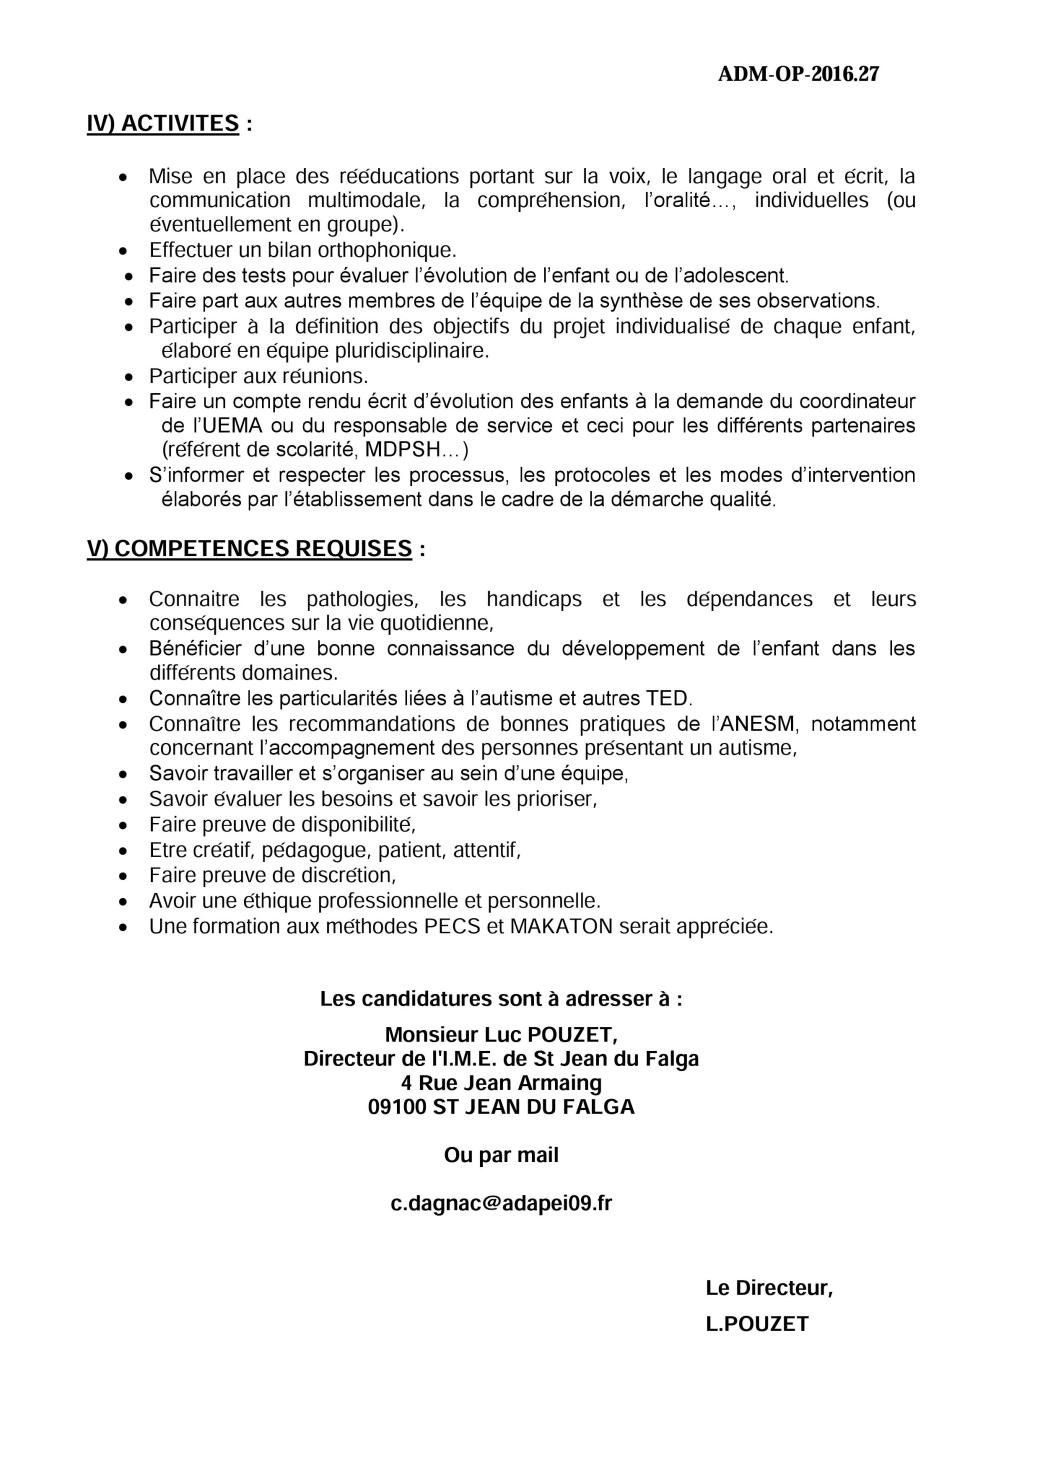 cv lettre de motivation cmpp